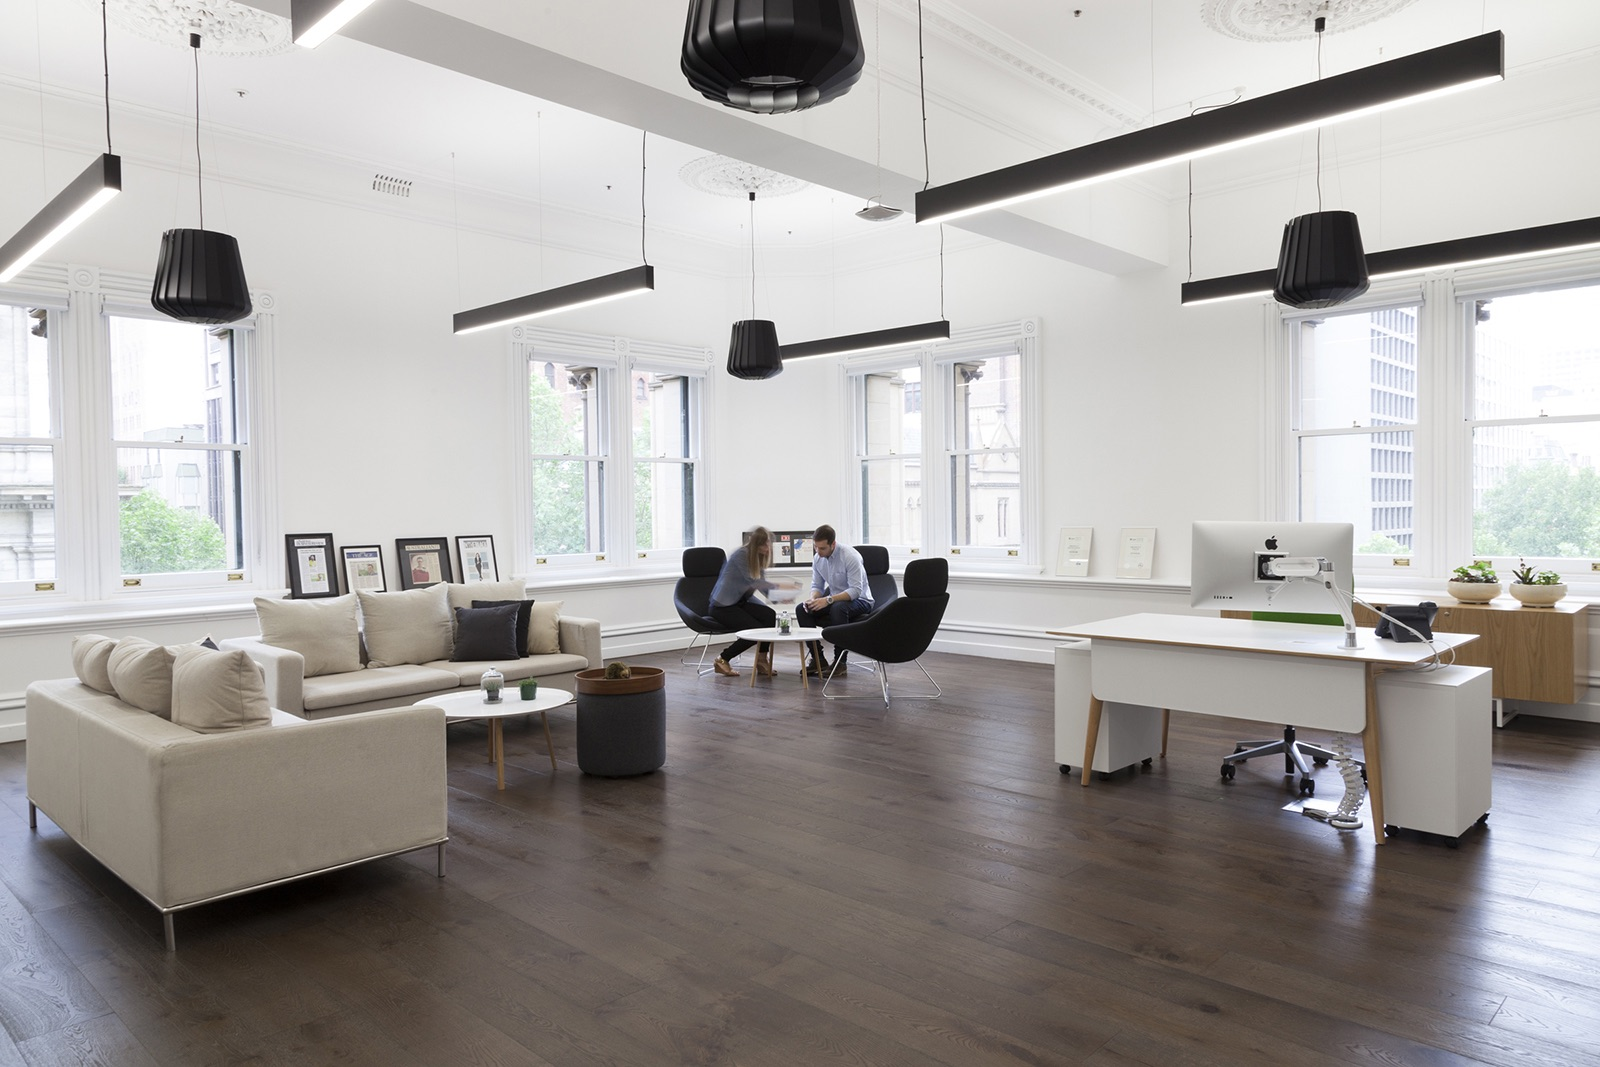 zendesk-melbourne-office-10